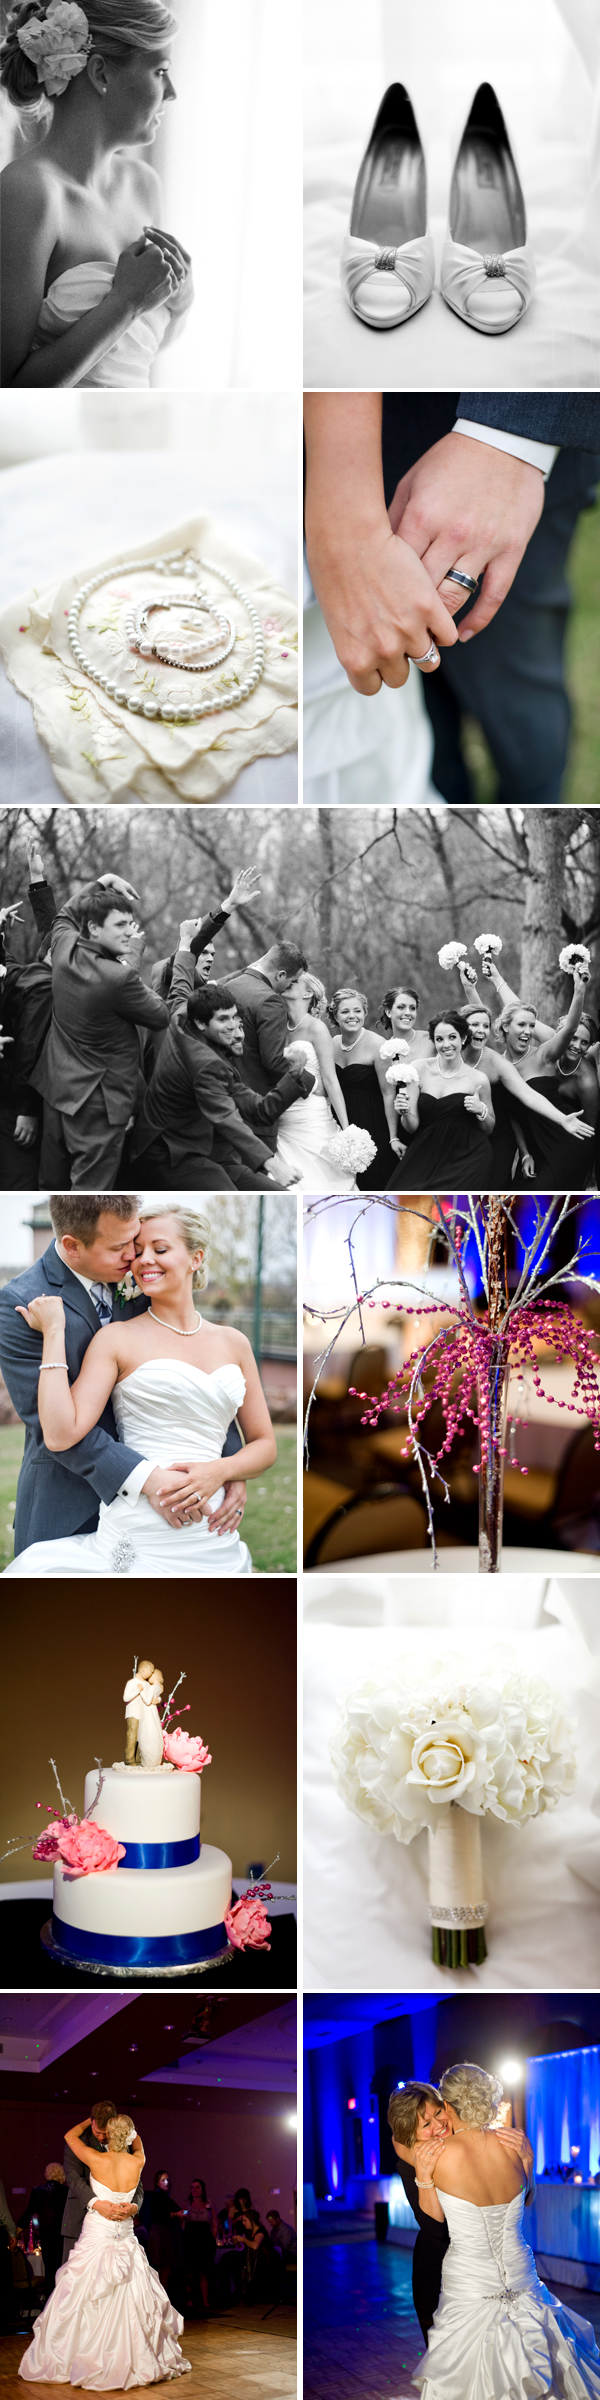 Wedding Photographers in Sioux Falls, SD and Colorado